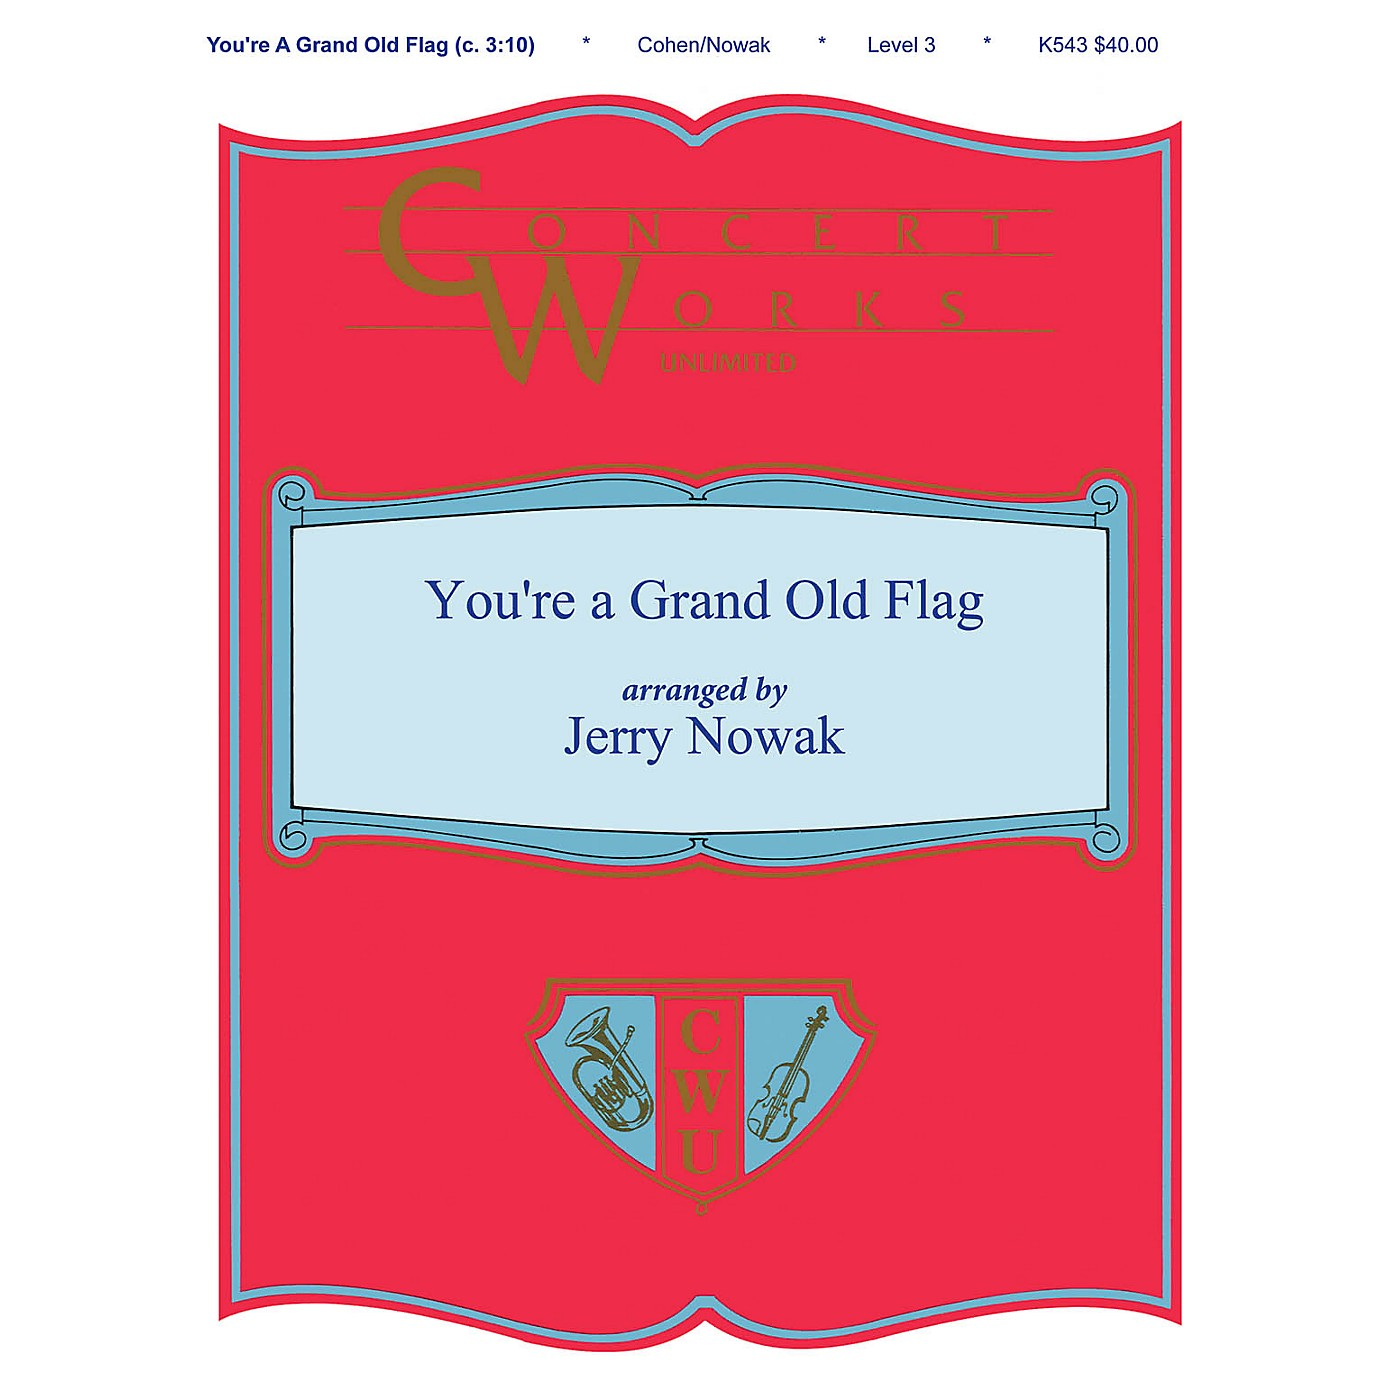 Shawnee Press You're a Grand Old Flag Concert Band Level 3 Arranged by Jerry Nowak thumbnail